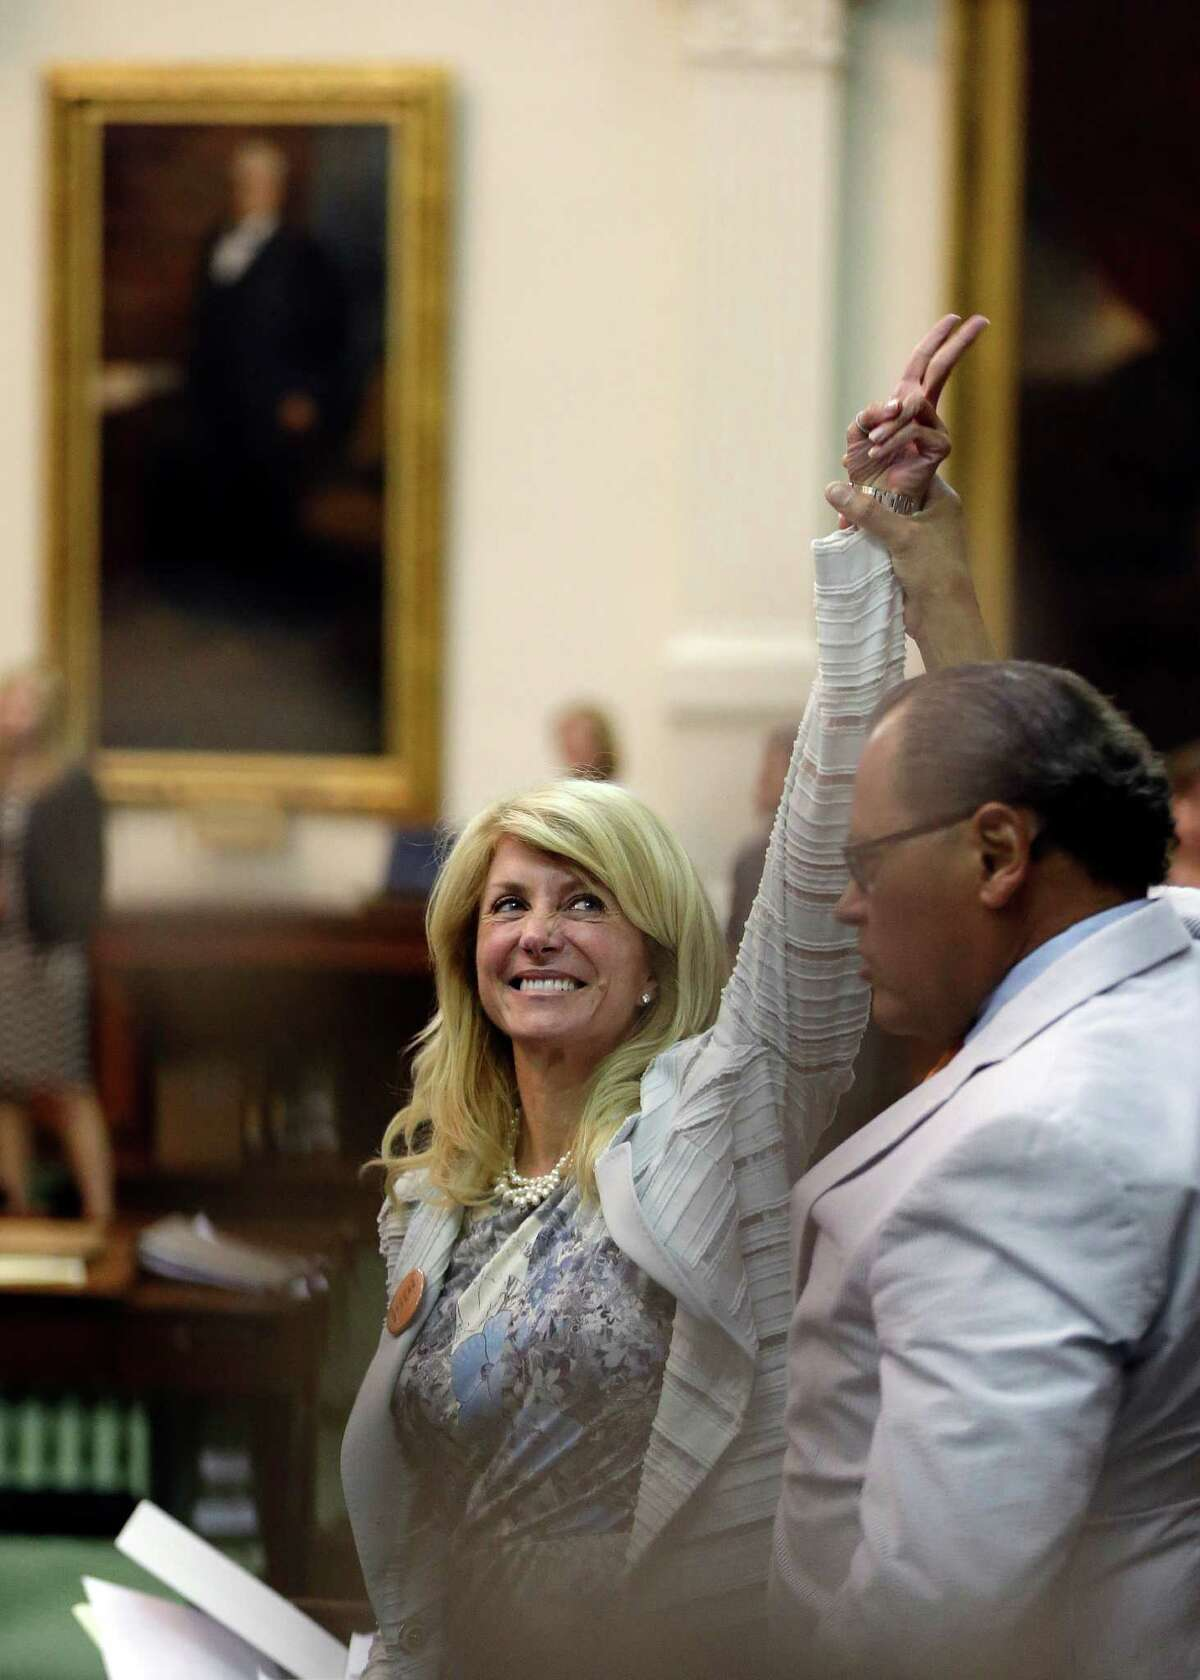 """Sen. Wendy Davis says she wants to """"fight back against Austin insiders set on closing women's health clinics and dramatically reducing access to healthcare for women and families across the state."""""""